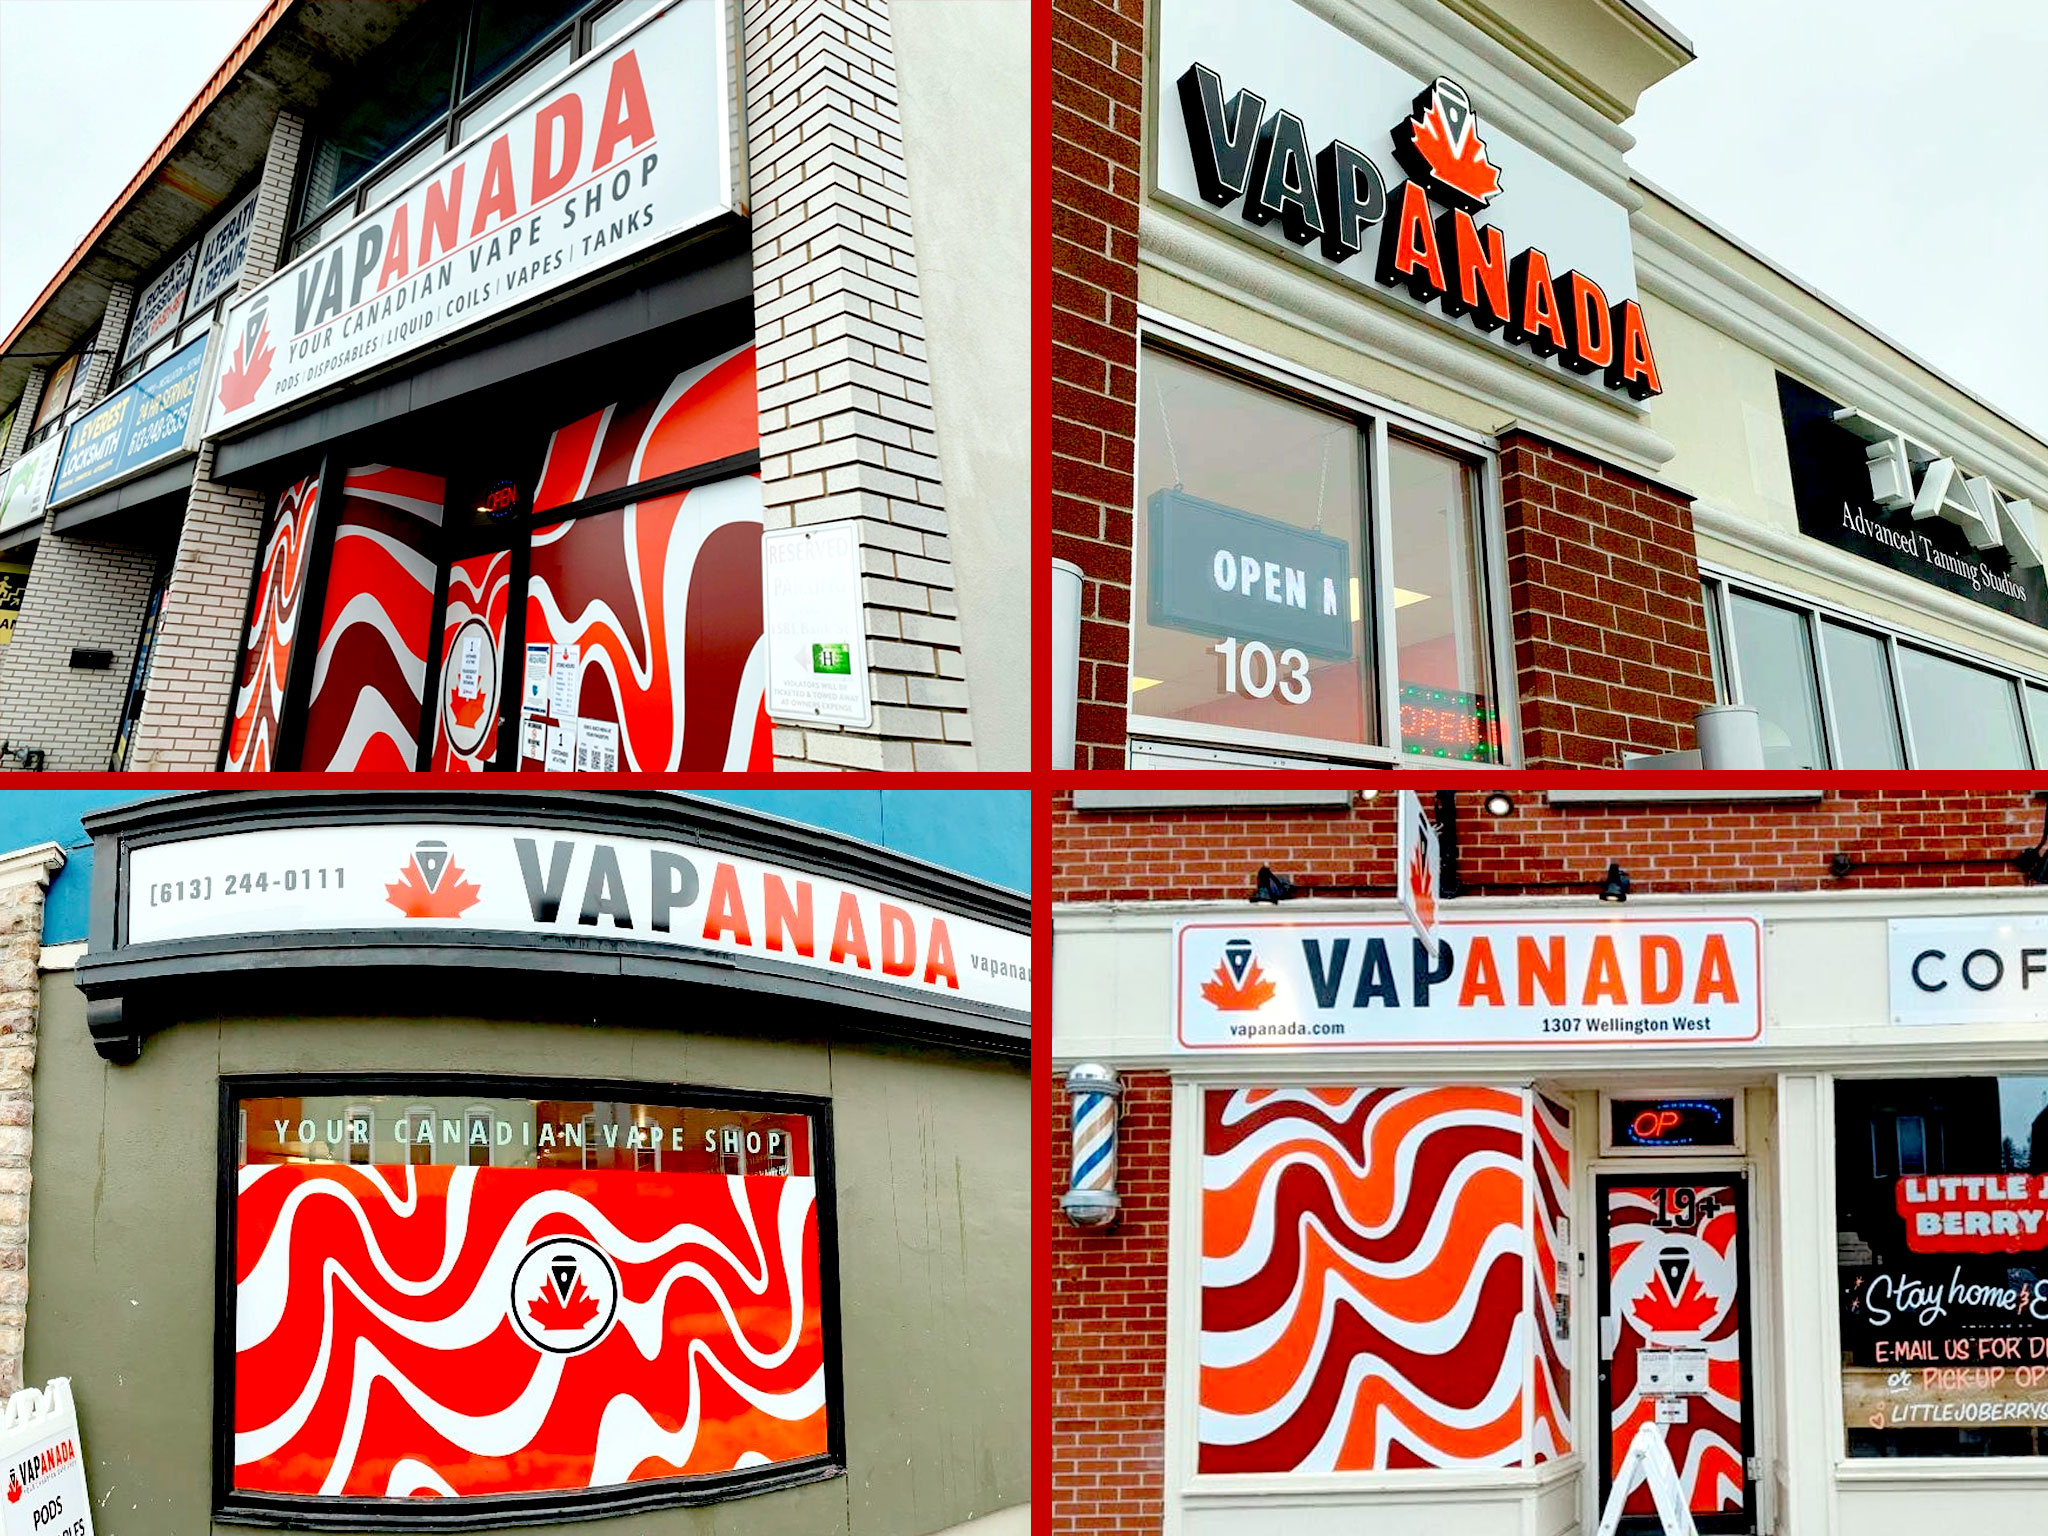 Vapanada - Our Five Year Journey And What's Next